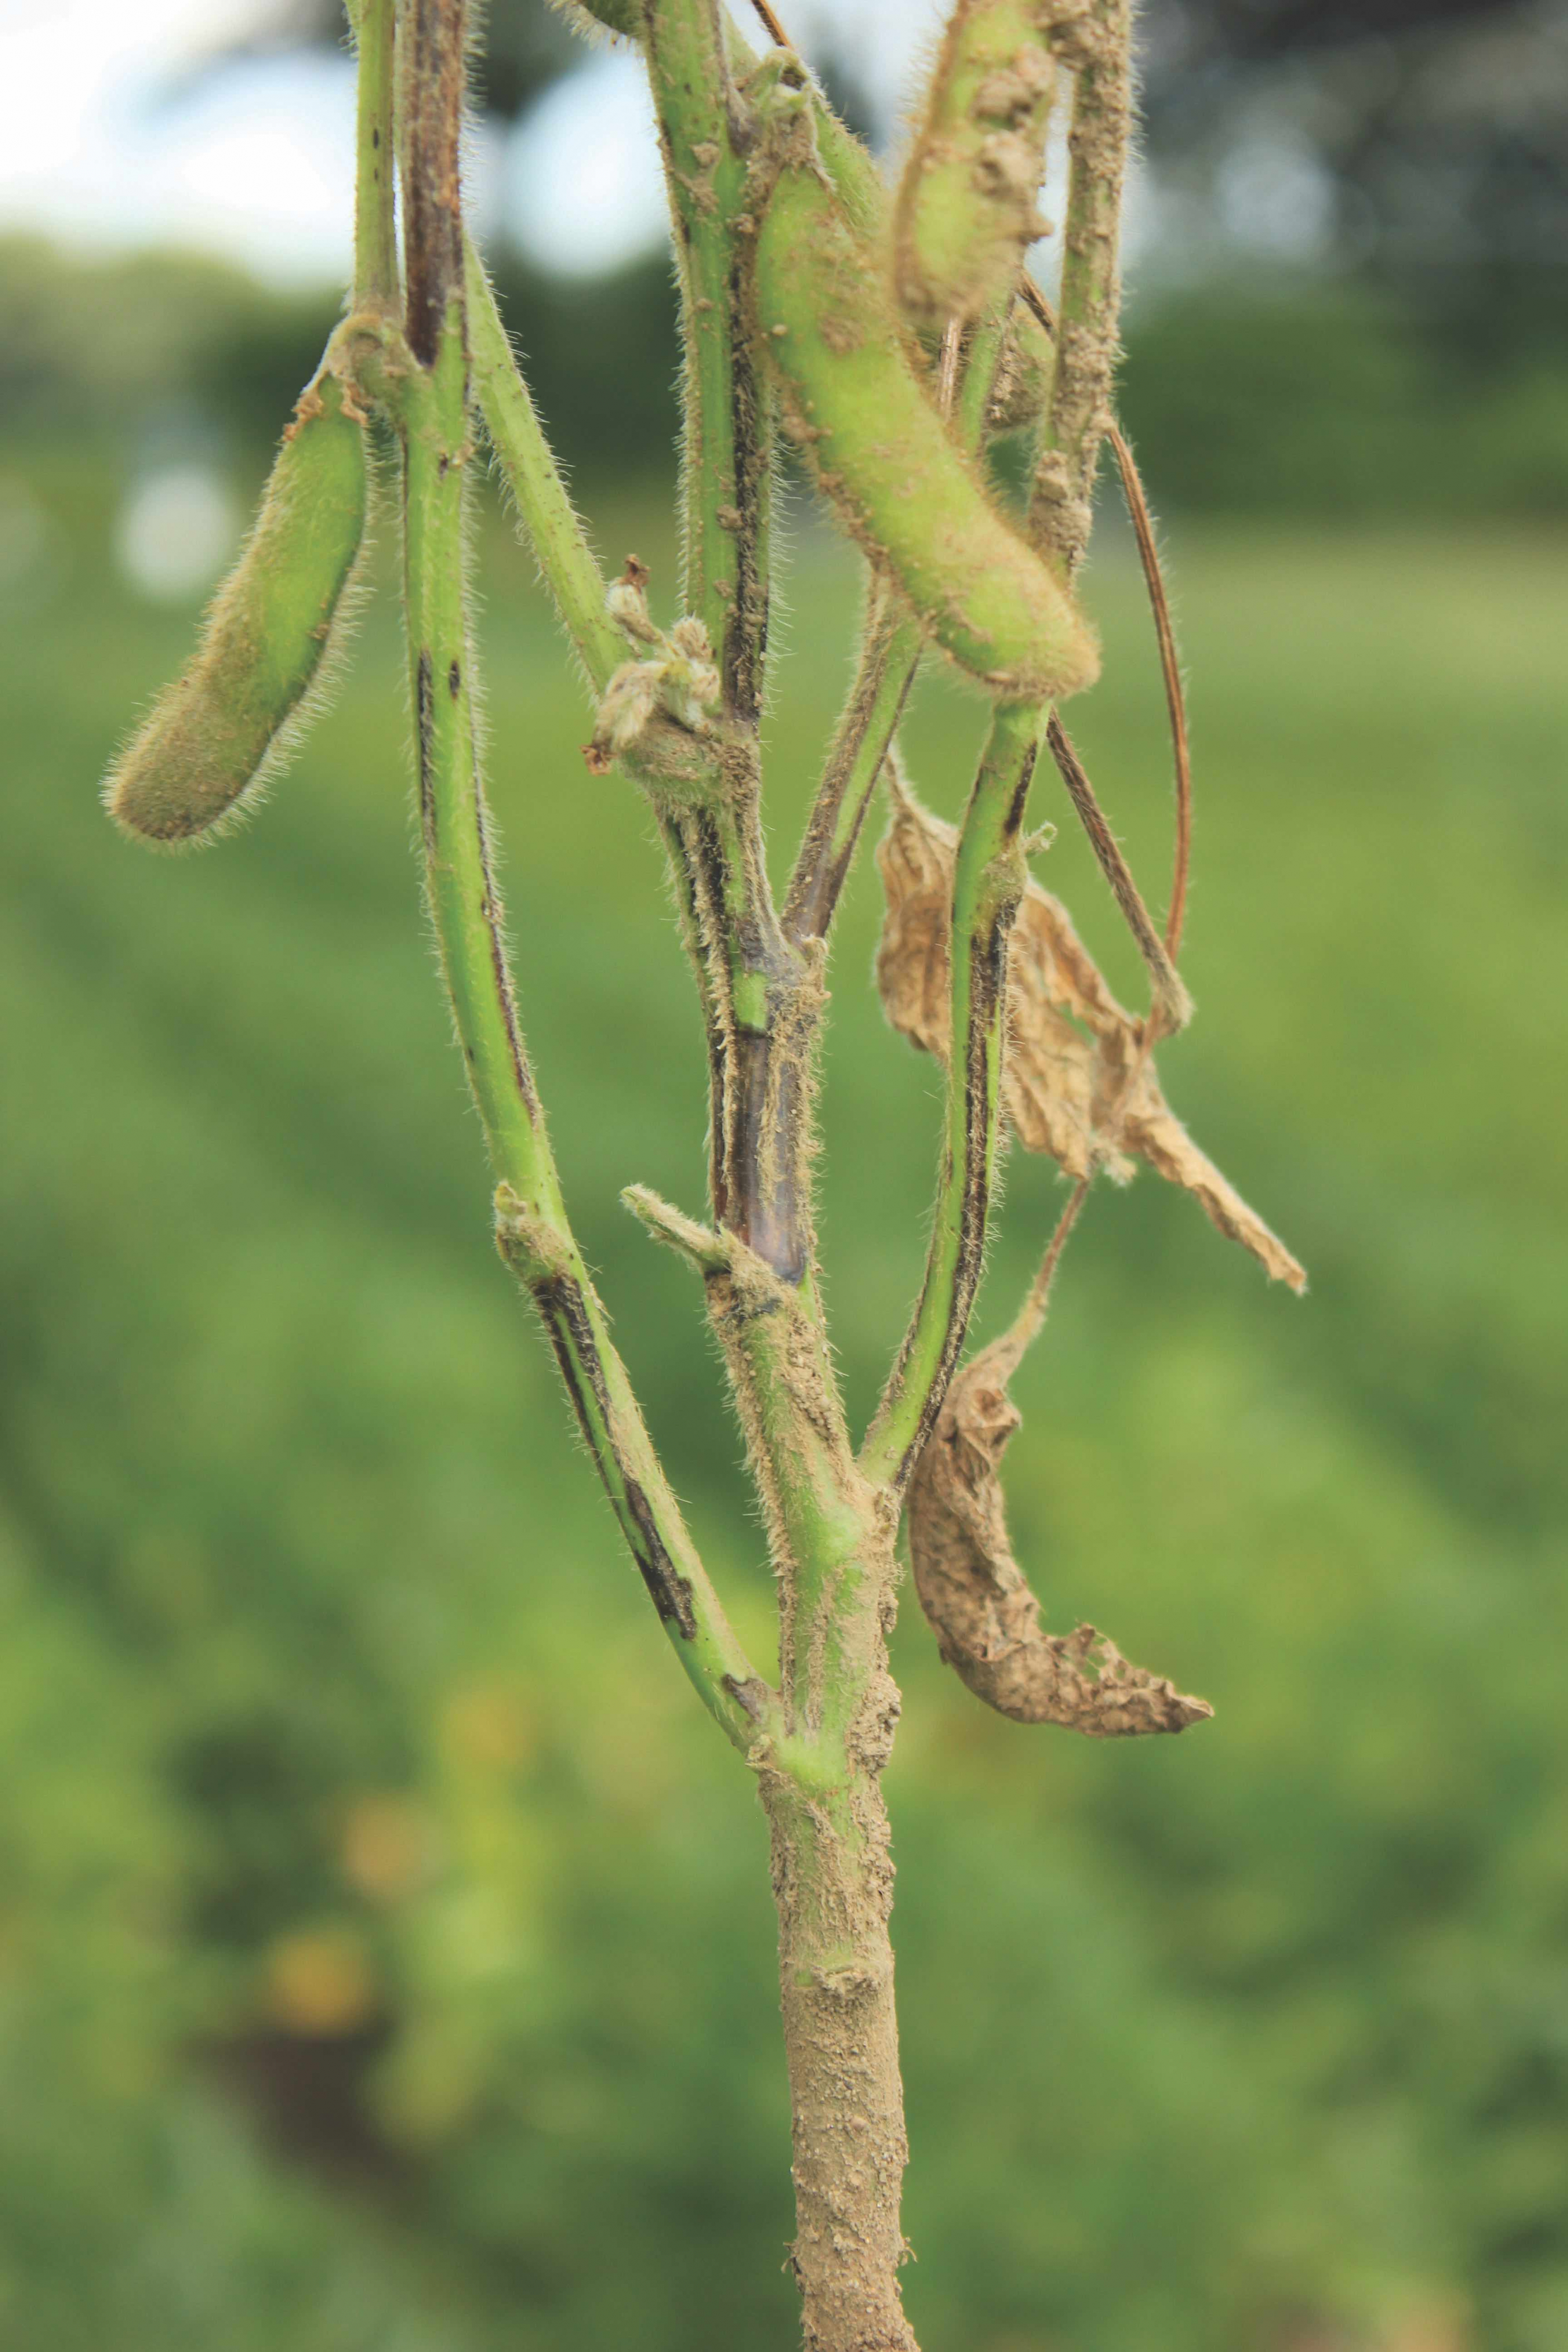 Figure 5. Diaporthe stem canker: Brown lesions occur at lower nodes and unlike the Phytophthora lesion are rarely observed at base of the plant.